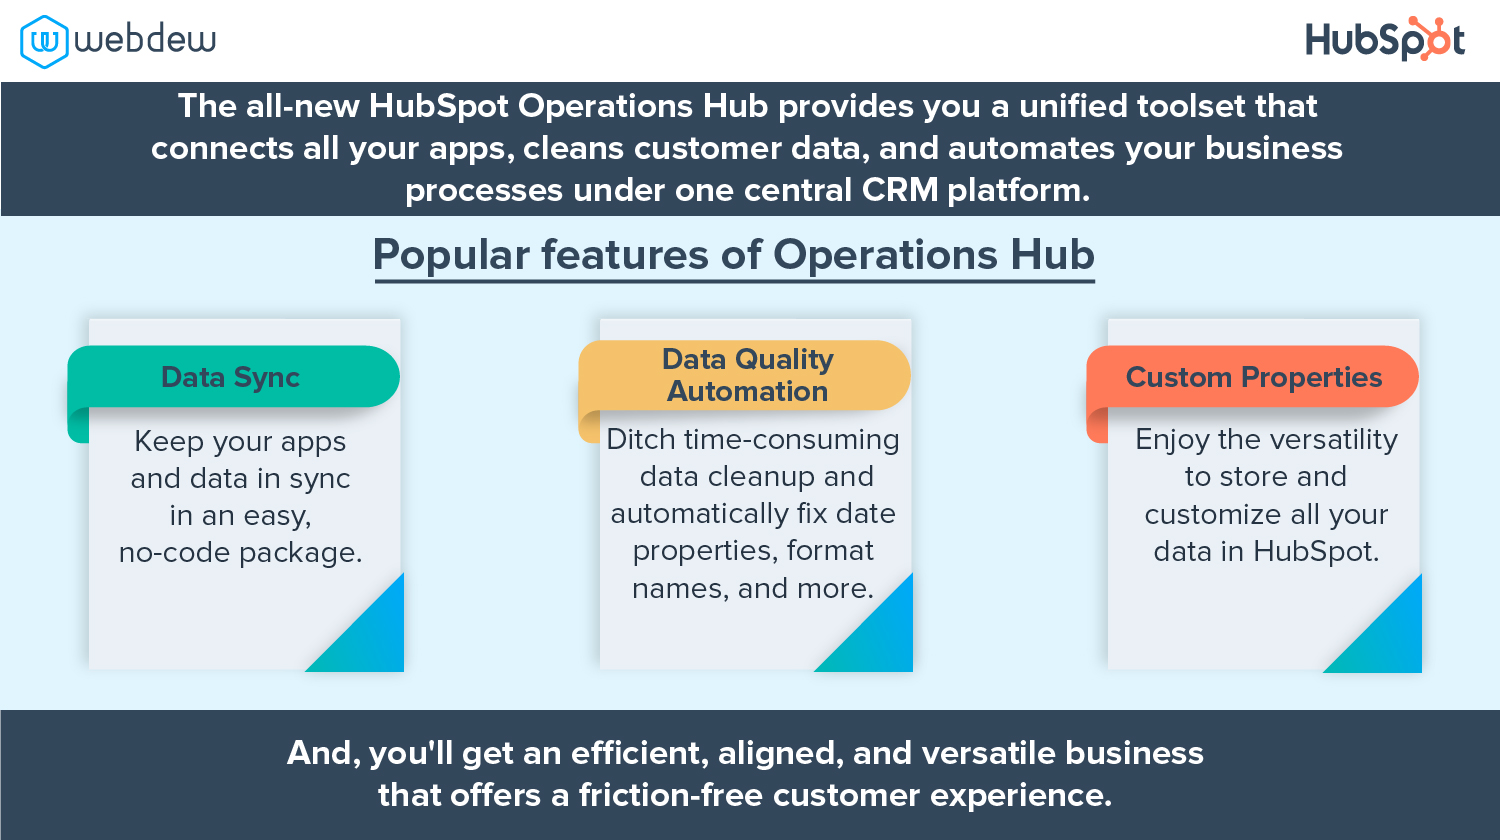 features-of-hubspot-operations-hub